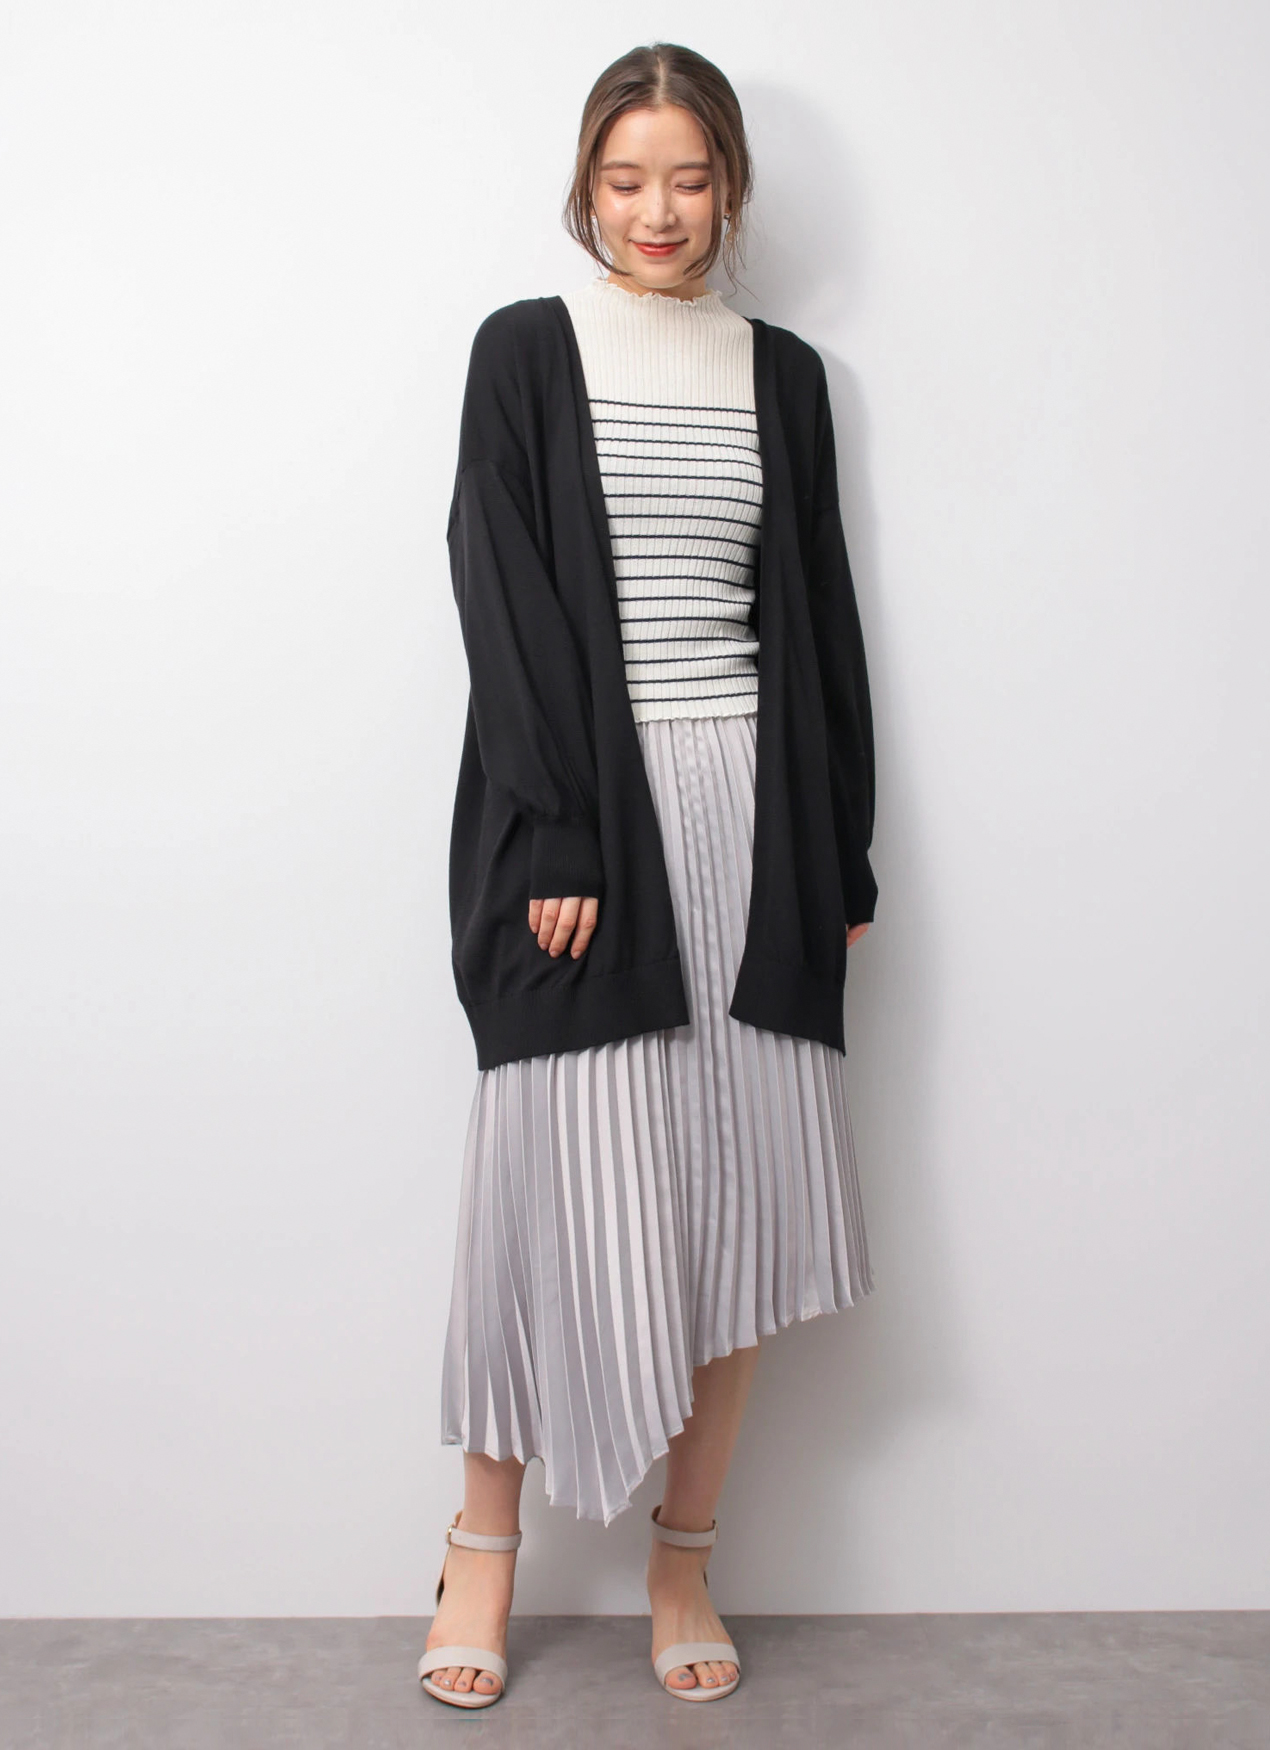 Earth, Music & Ecology Tiana Cardigan - Black